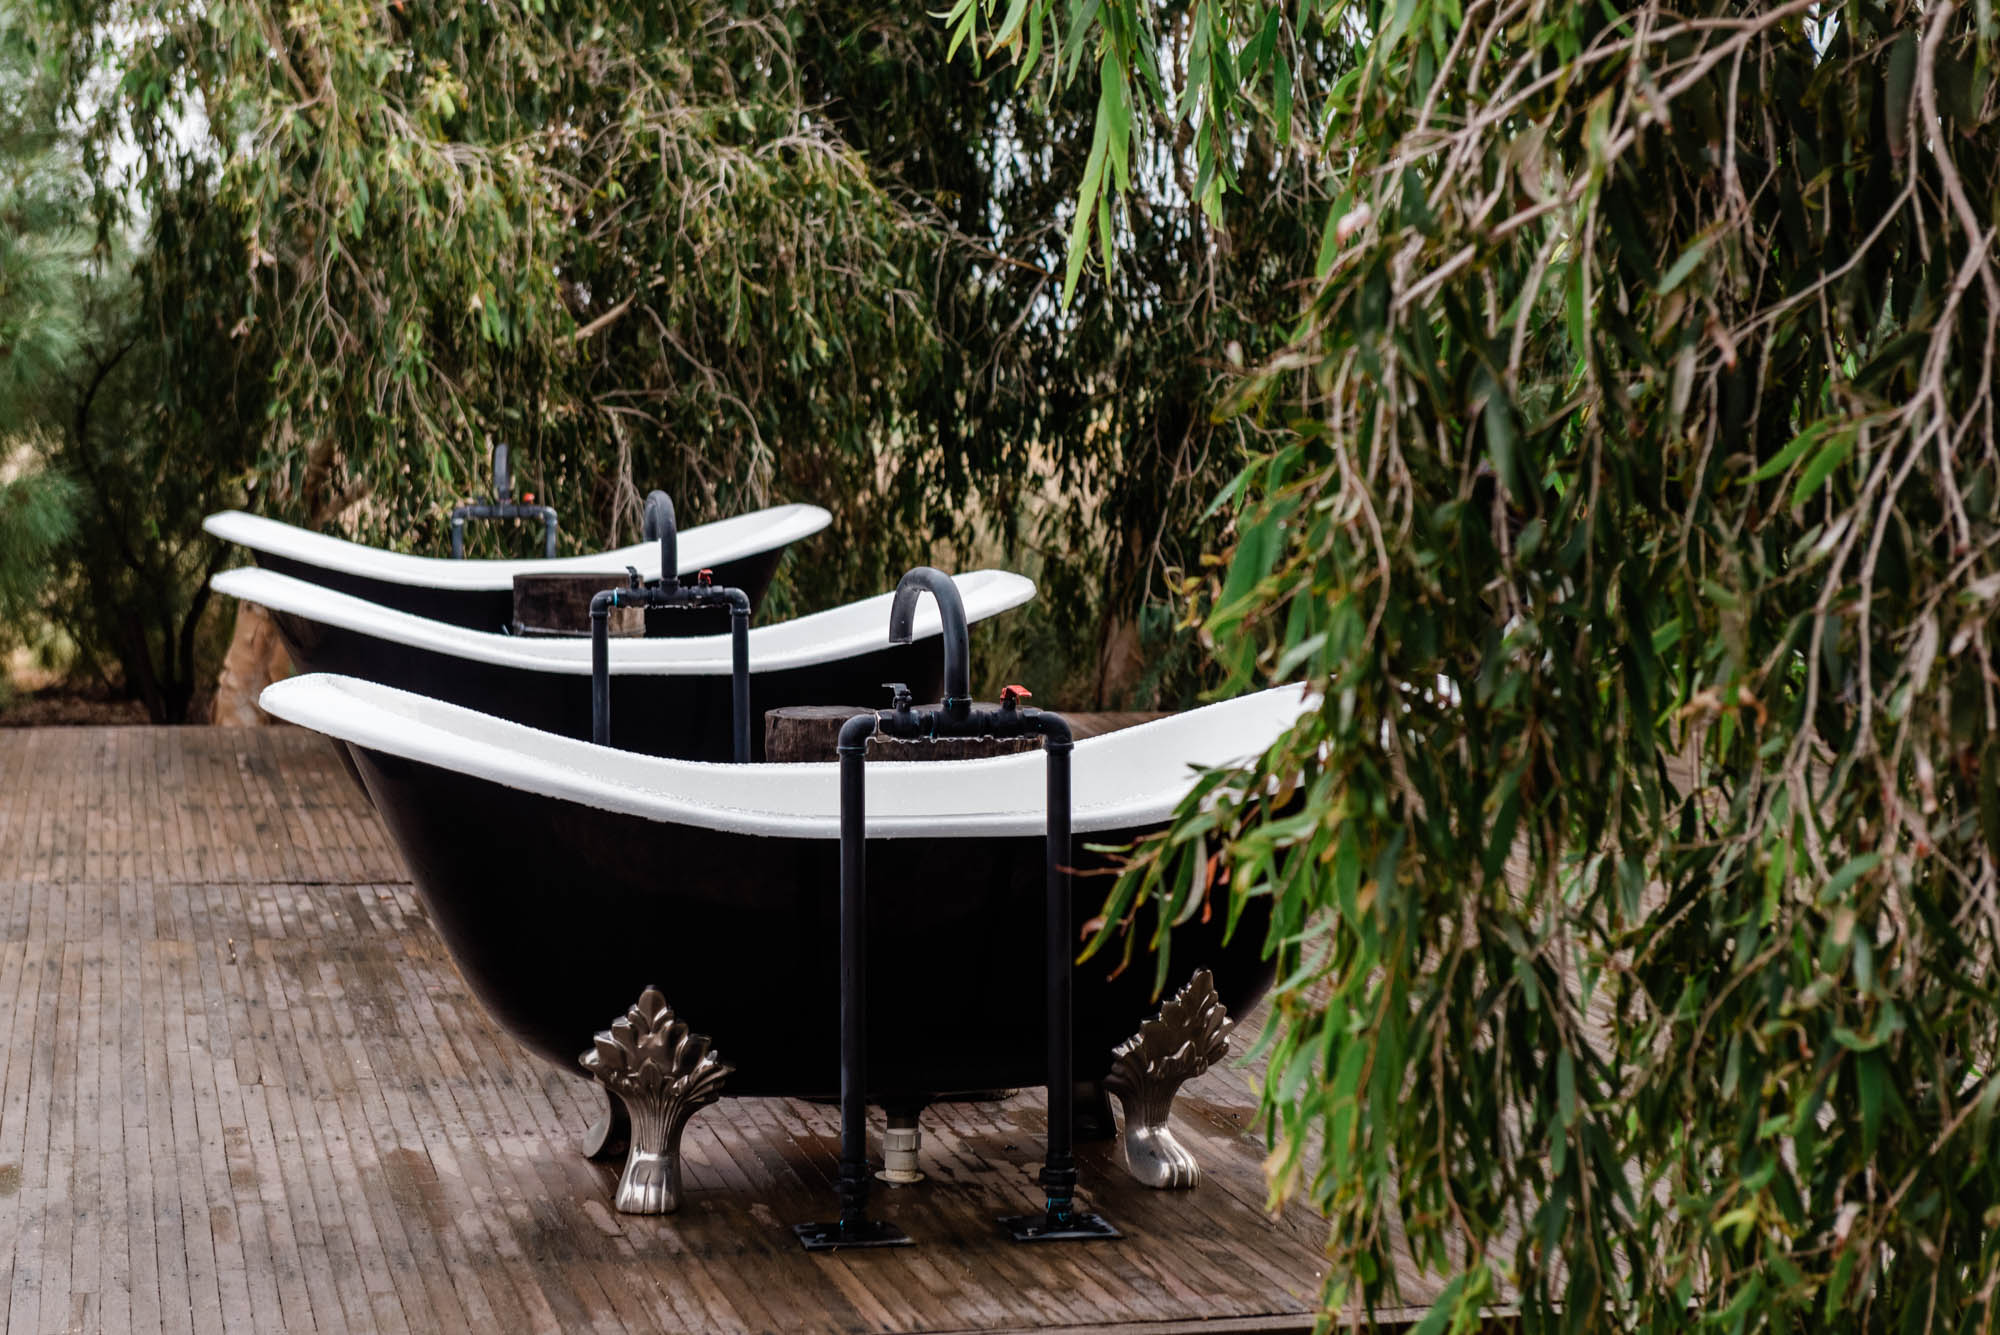 clawfoot bathtubs at Saltbush Retreat